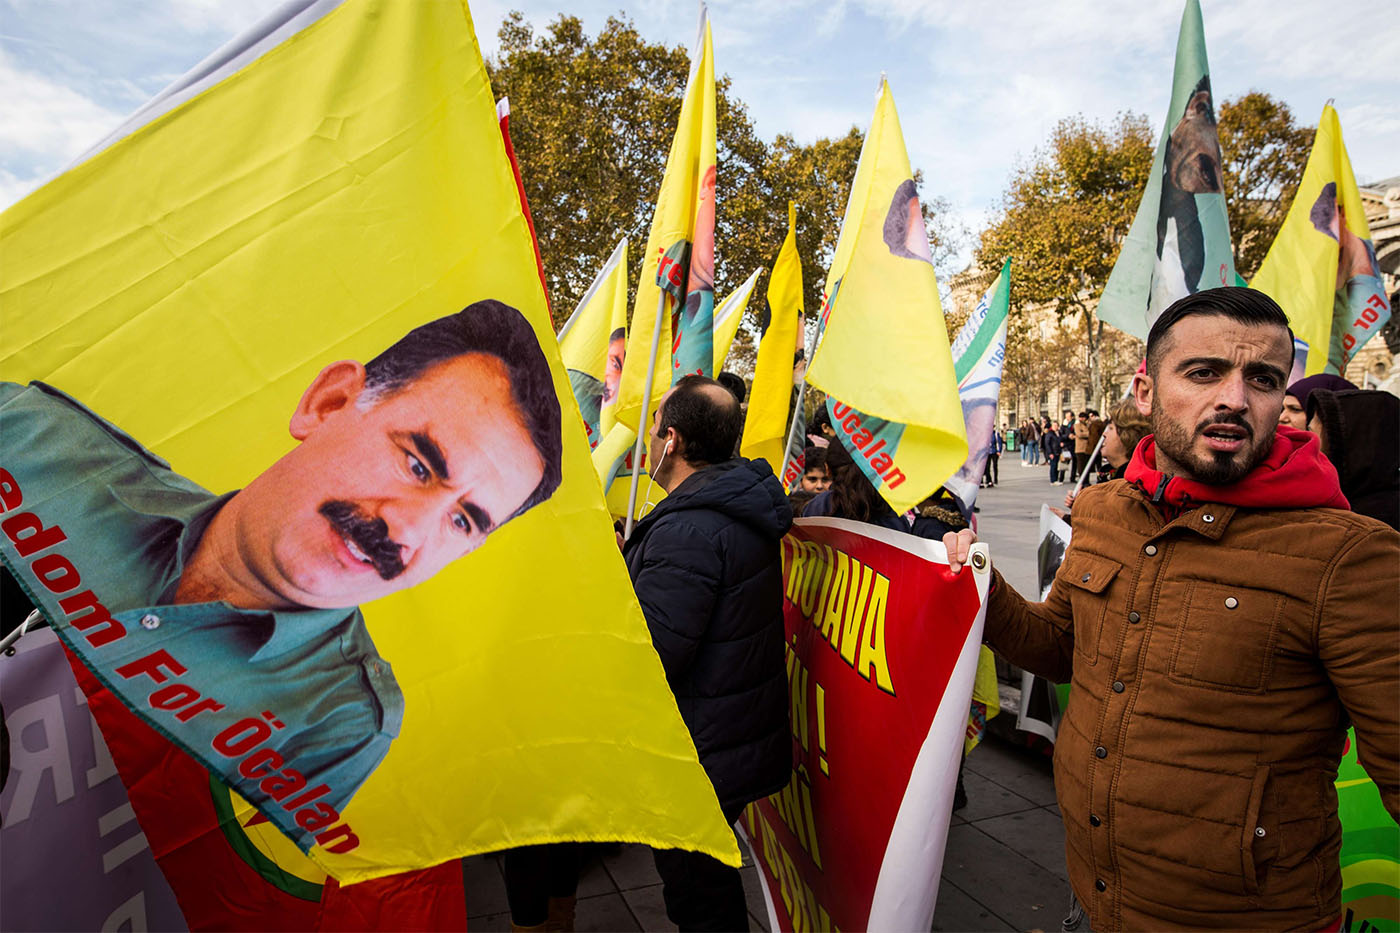 Kurdish protesters take part in a demonstration in Paris demanding the freedom of jailed Kurdistan Workers' Party (PKK) leader Abdullah Ocalan